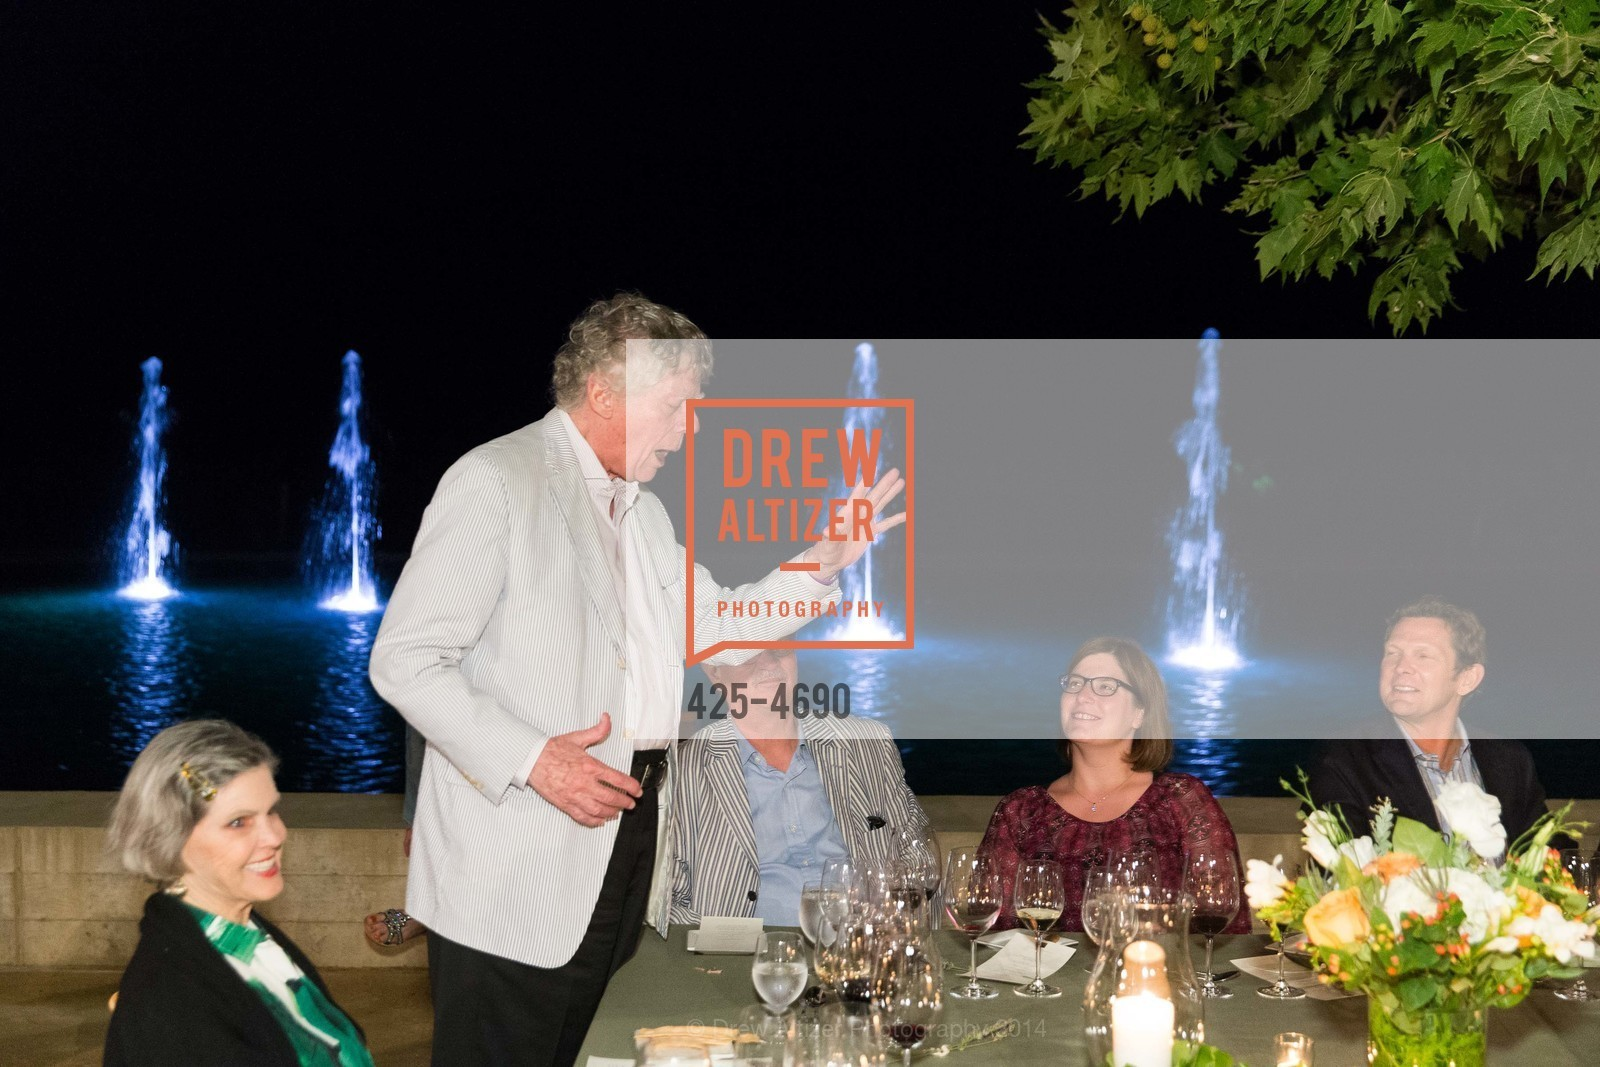 Gordon Getty, Photo #425-4690